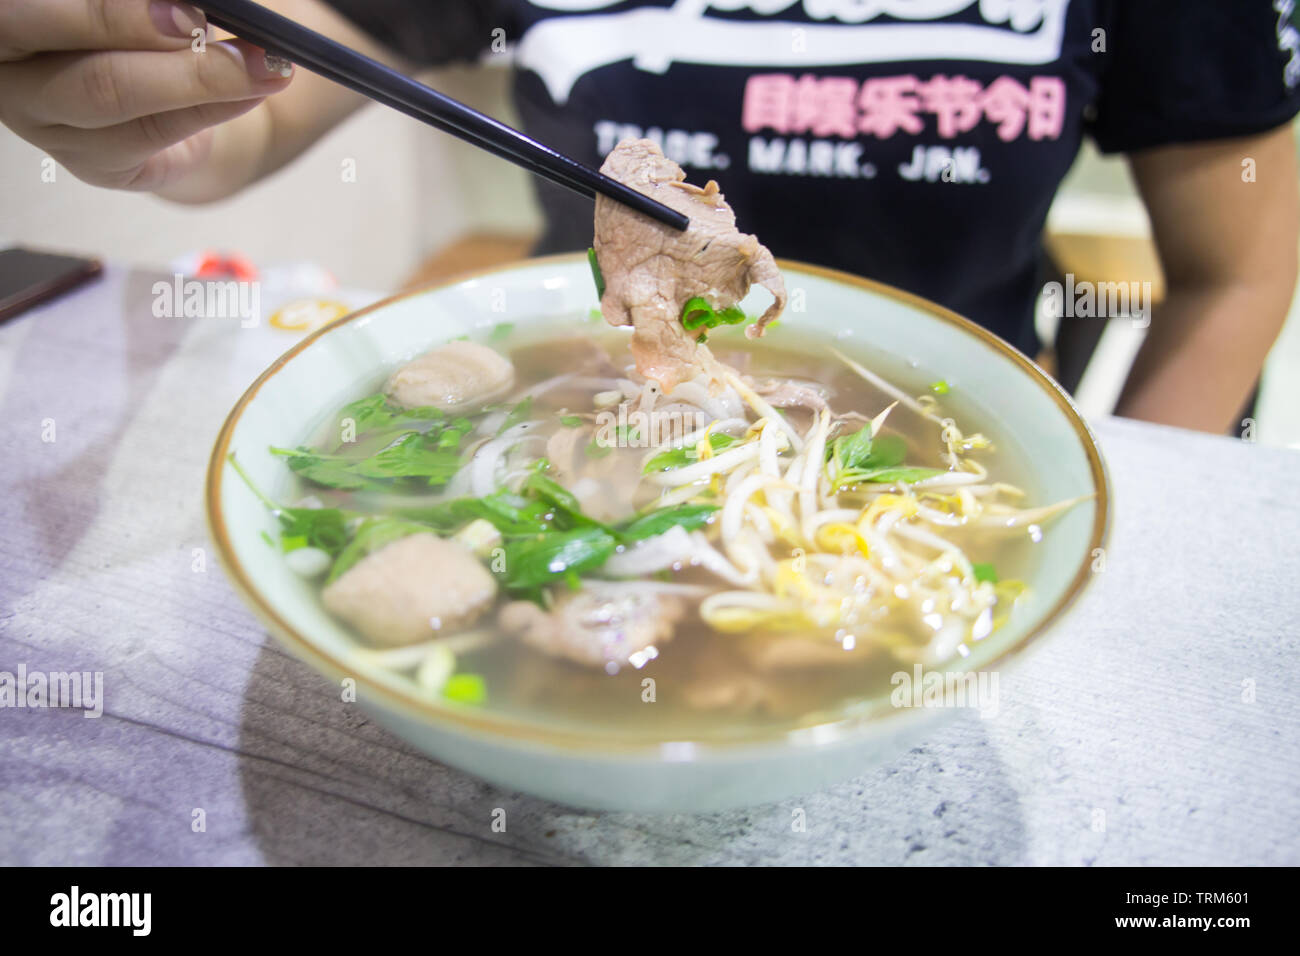 Big Bowl Of Pipping Hot Vietnamese Pho Noodle Soup With Beef Tendon Tripe Brisket Bean Sprout And Cilantro Stock Photo Alamy